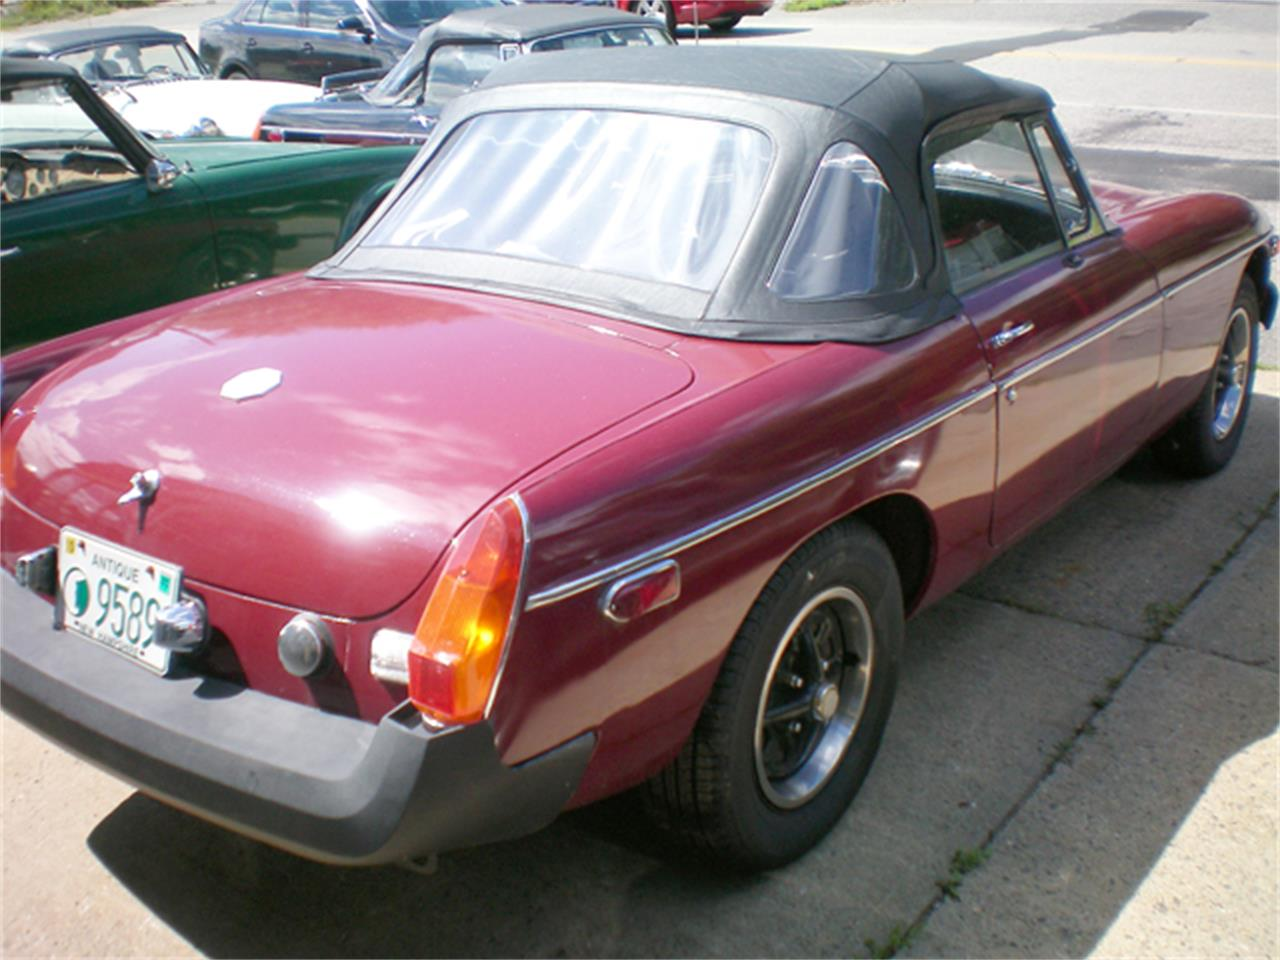 Large Picture of 1976 MG MGB - $6,900.00 - JBTA